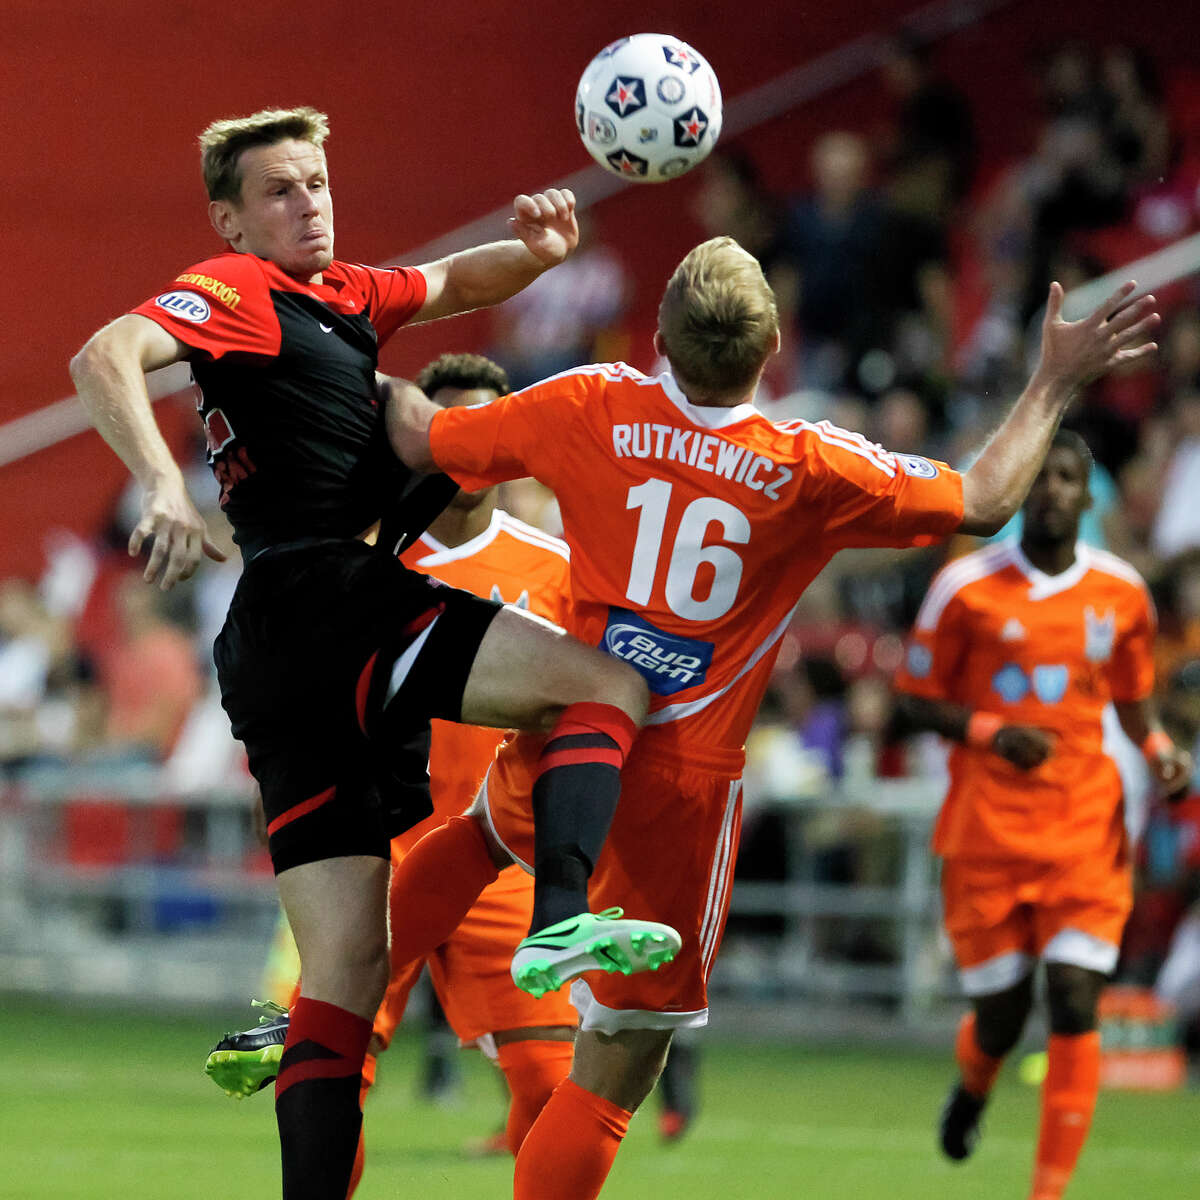 Tomasz Zahorski of the Scorpions battles for the ball with Kevin Rutkiewicz of the Carolina RailHawks in the first half of their game at Toyota Field on Saturday, Sept. 21, 2013. MARVIN PFEIFFER/ mpfeiffer@express-news.net